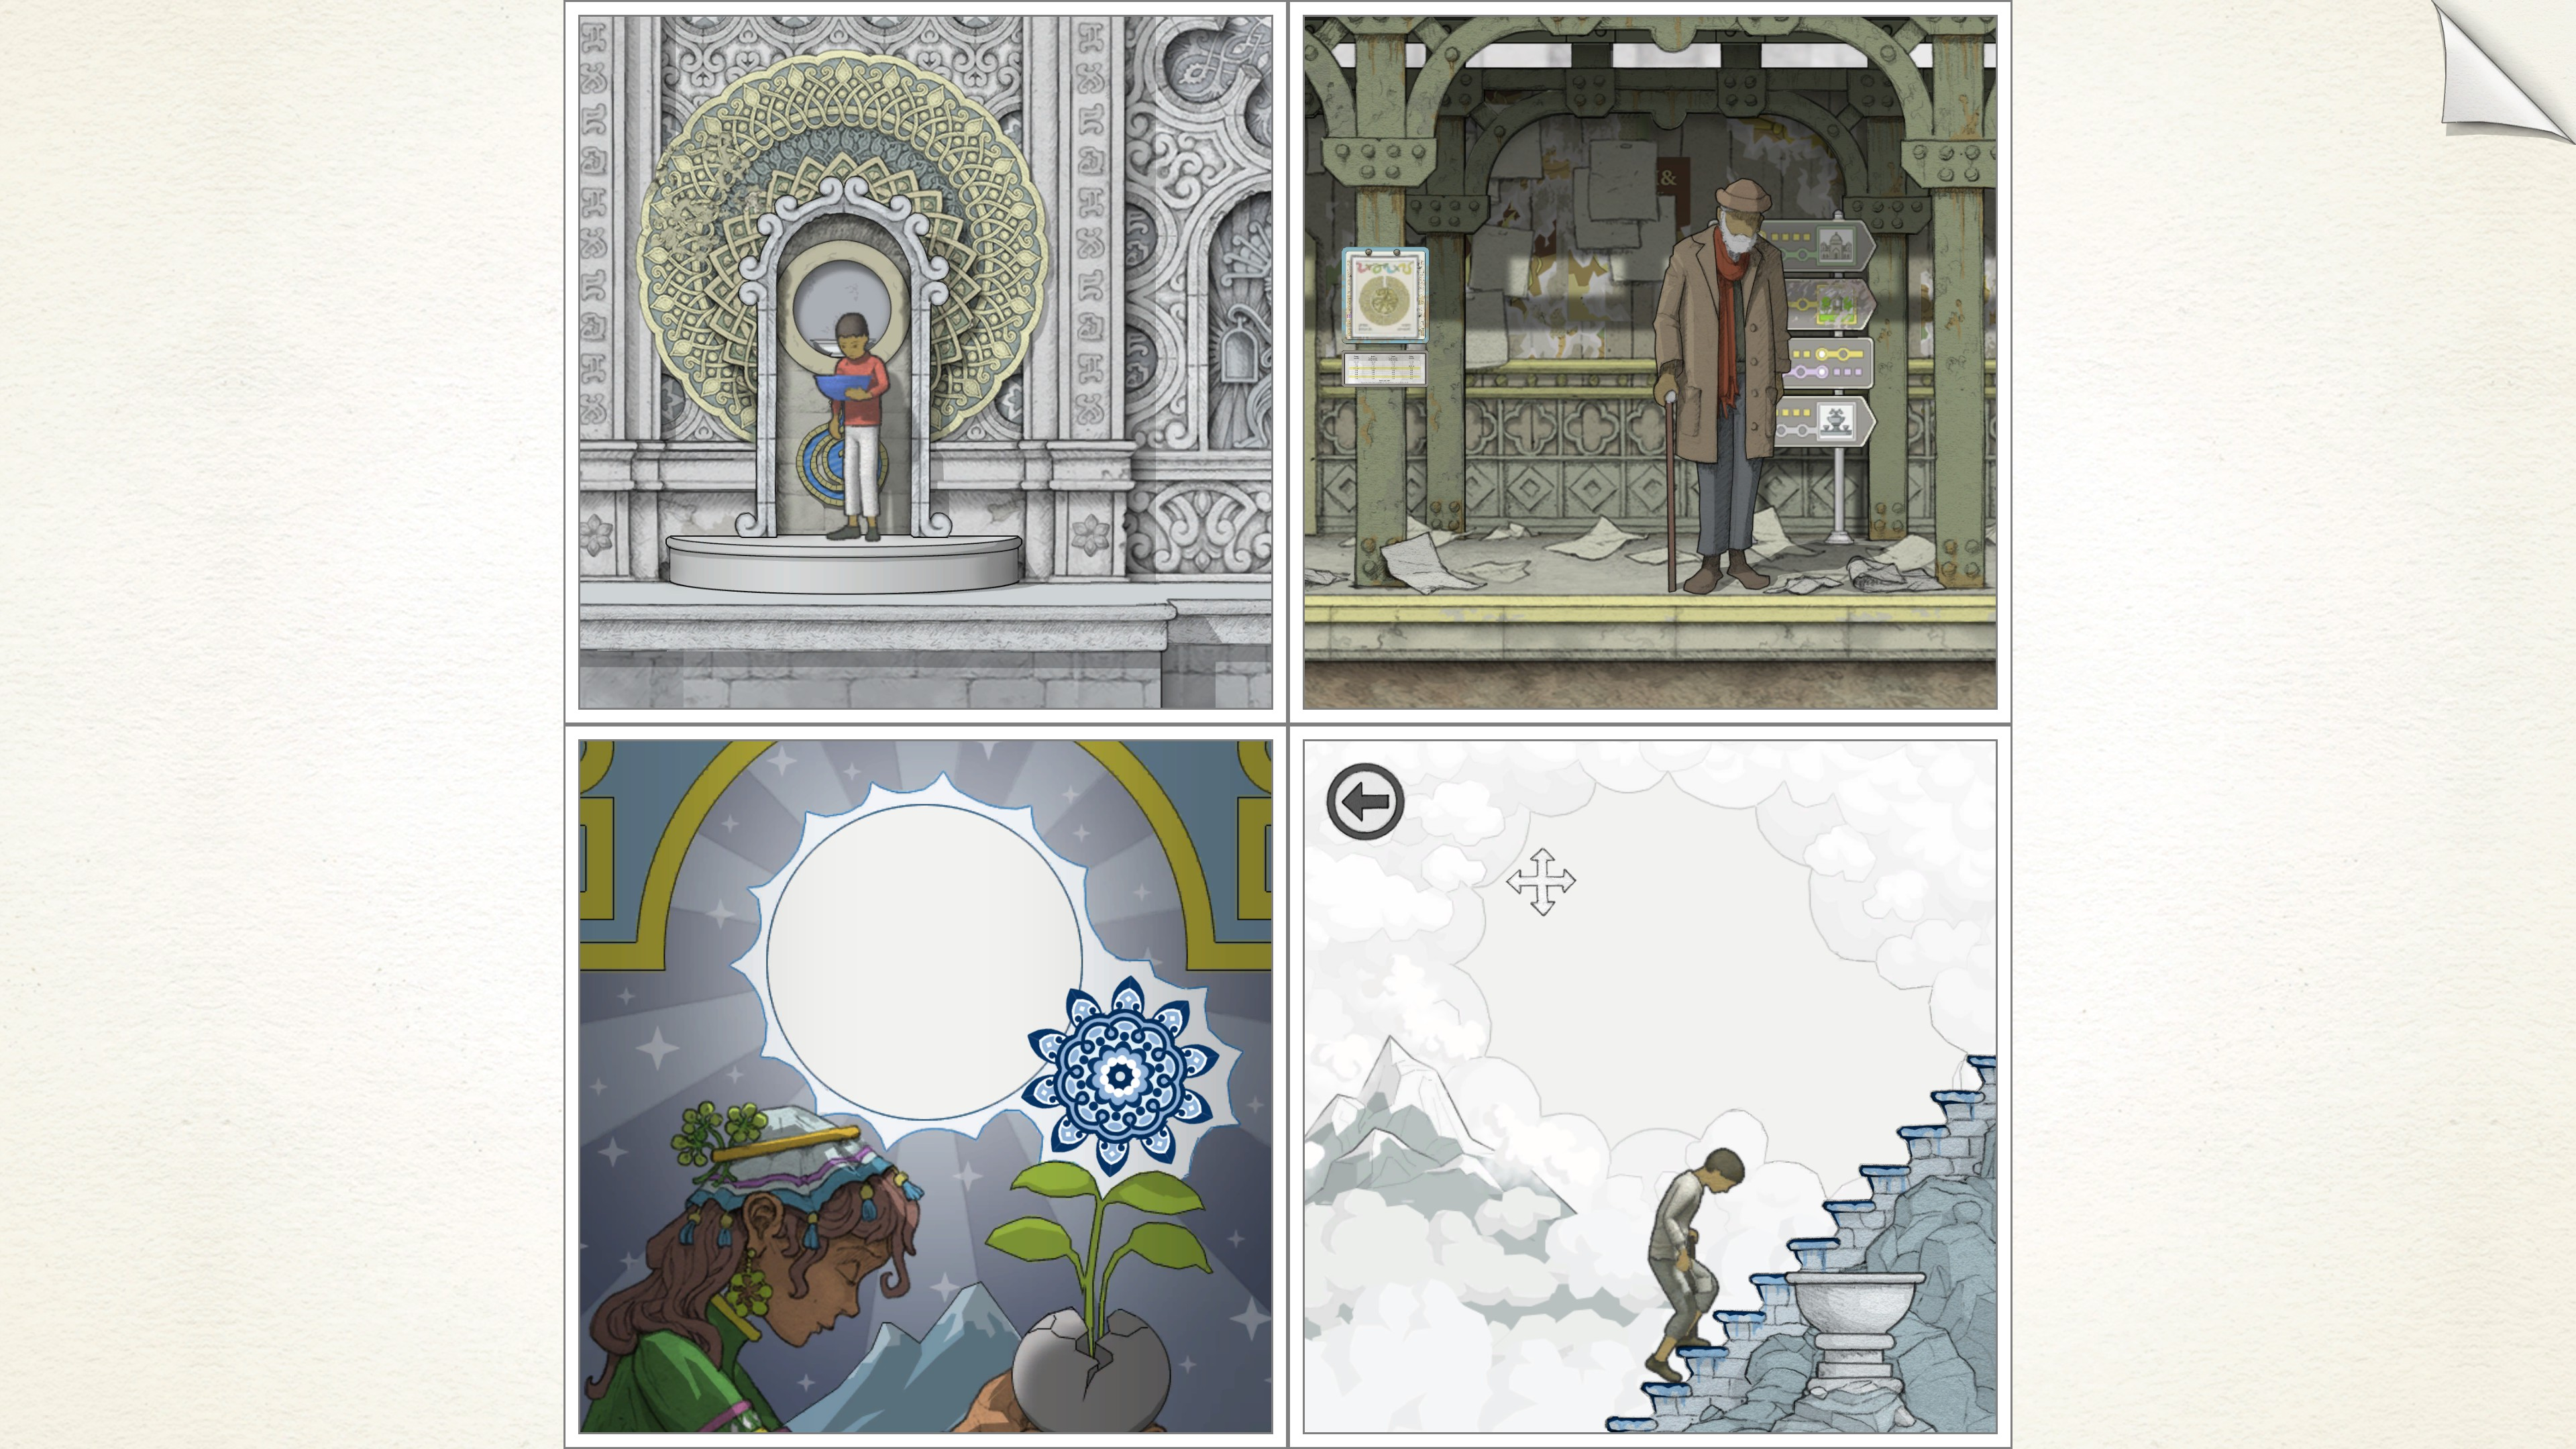 top left, boy stands with bowl in front of shrine. top right, old man with cane waits at bus stop littered with papers. bottom right, young man with cane climbs stairs, the clouds behind him have a hole shaped into them. bottom left, woman holds a flower to the sun, the shape of the flower and sun together match the hole in the prior image.